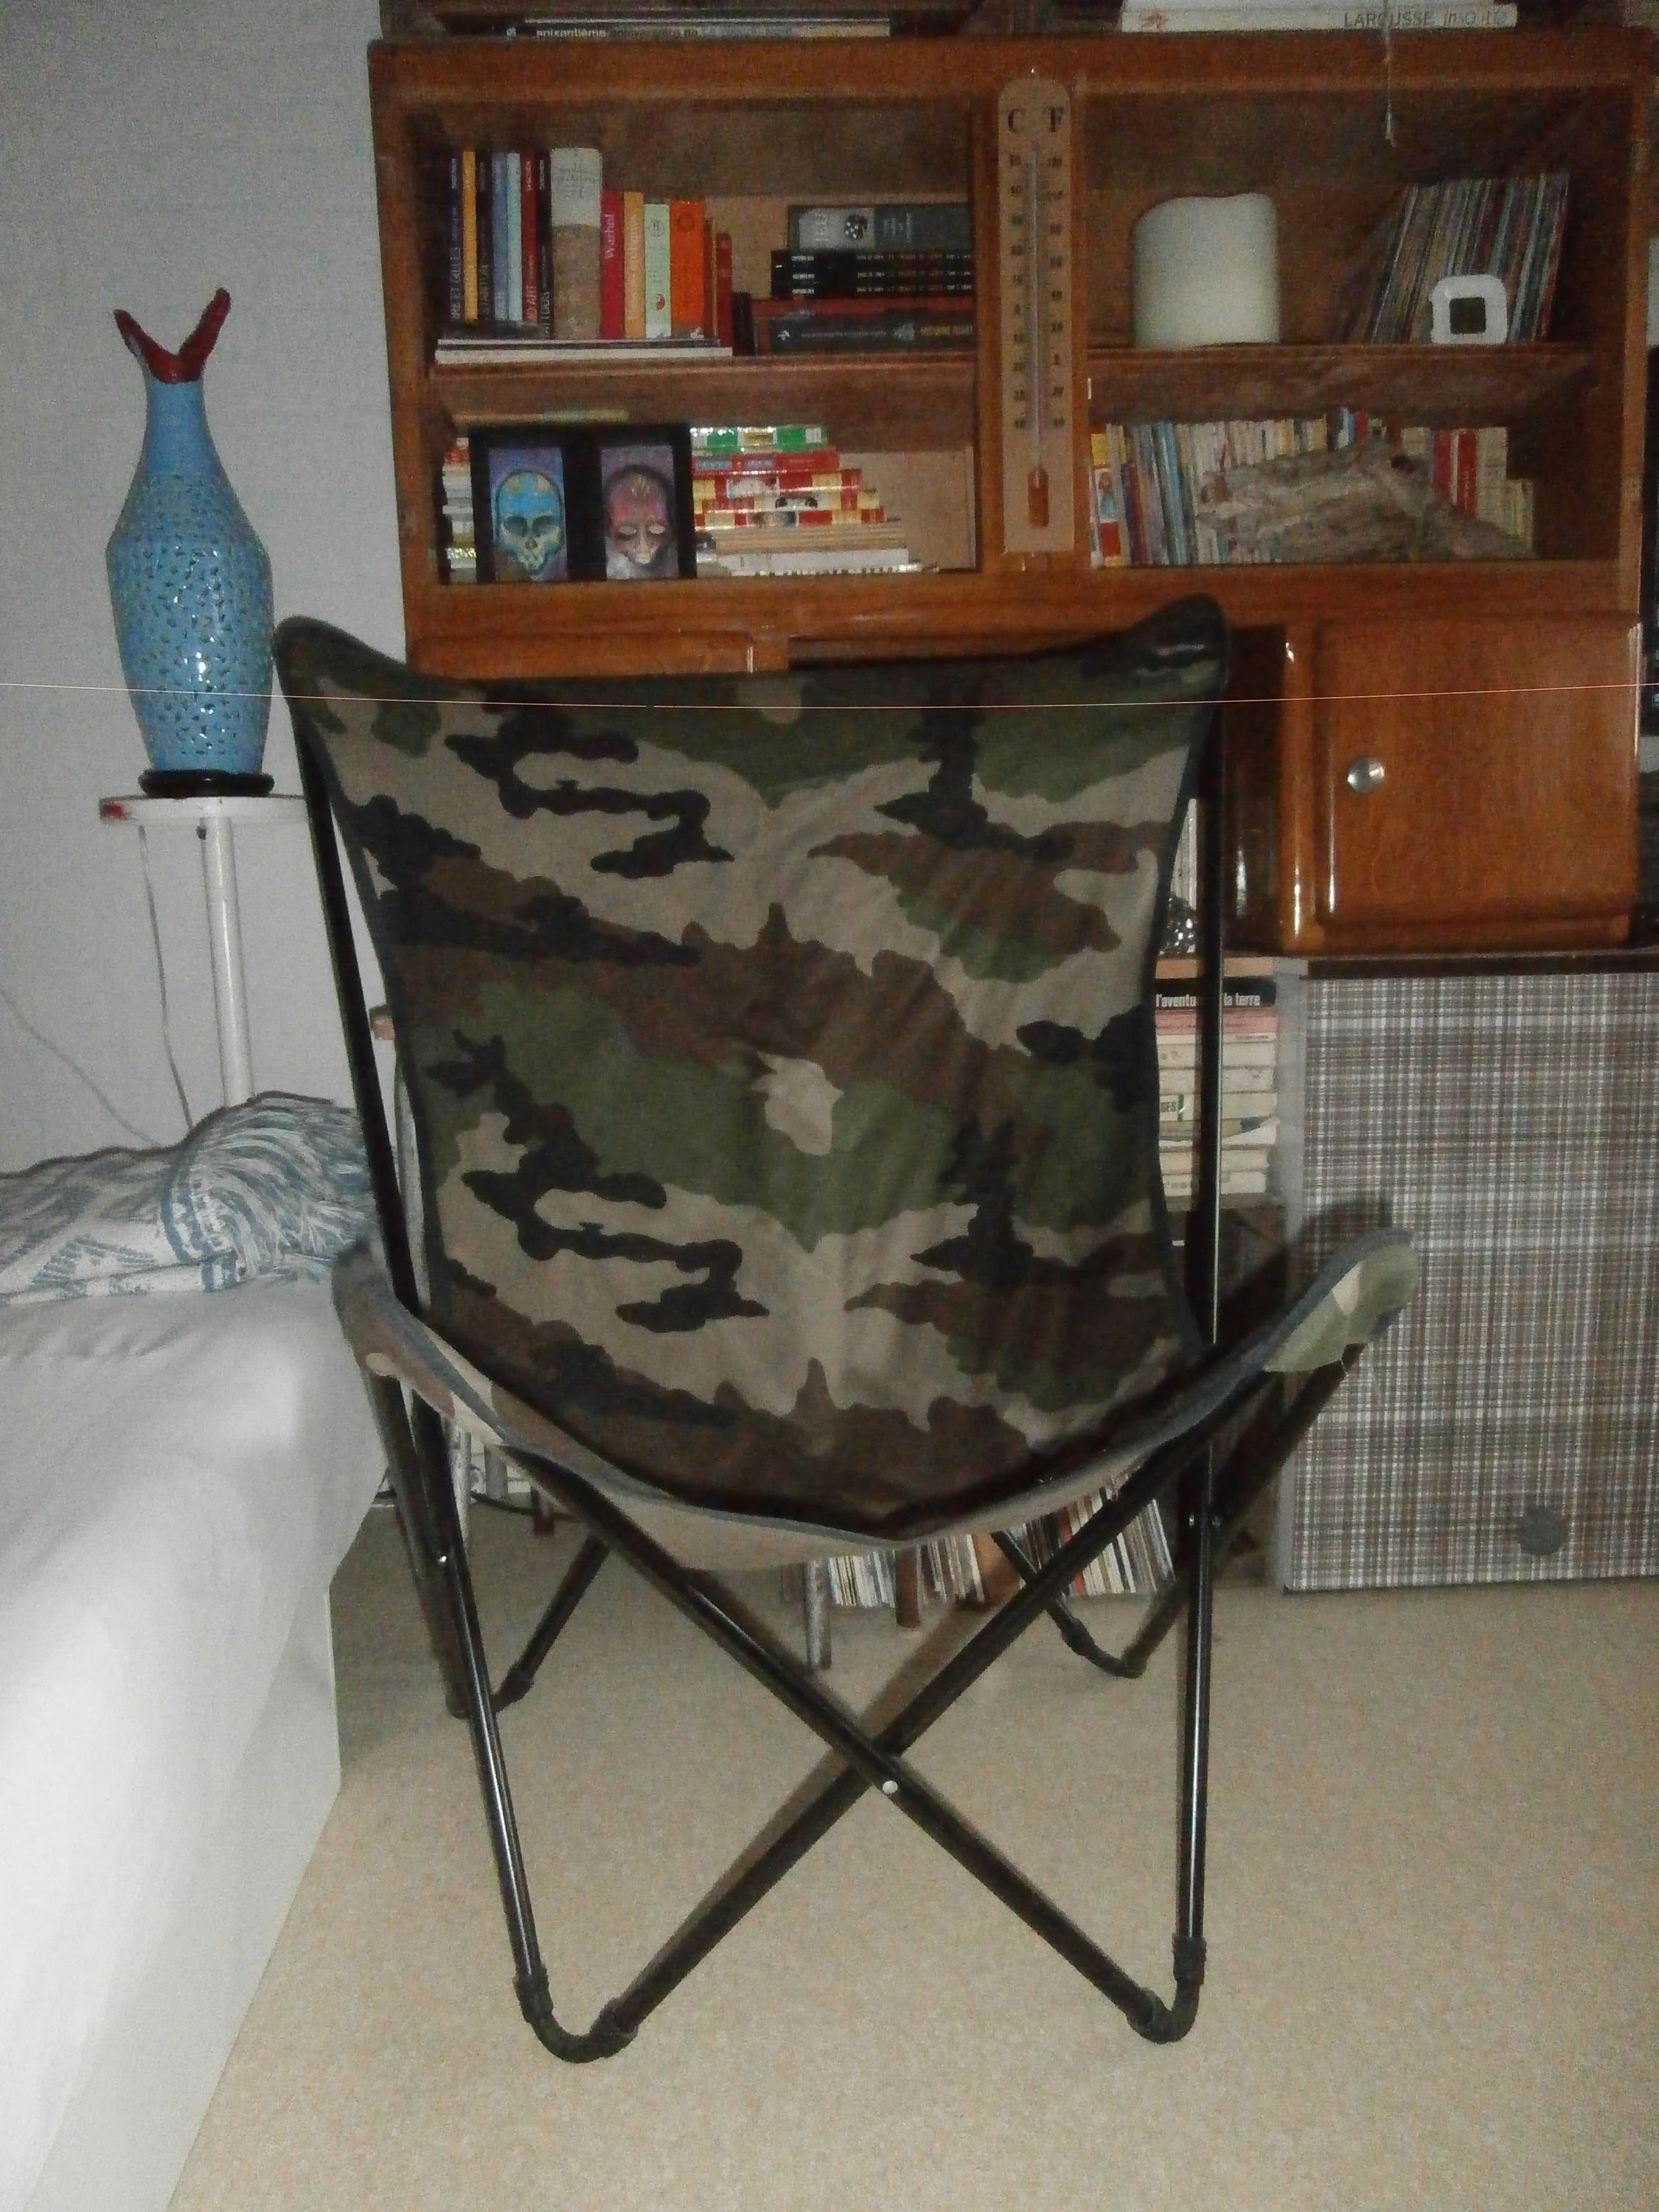 lafuma pop up chair dining booster seat for 3 year old jc castelbajac canvas camouflage vintage etsy image 0